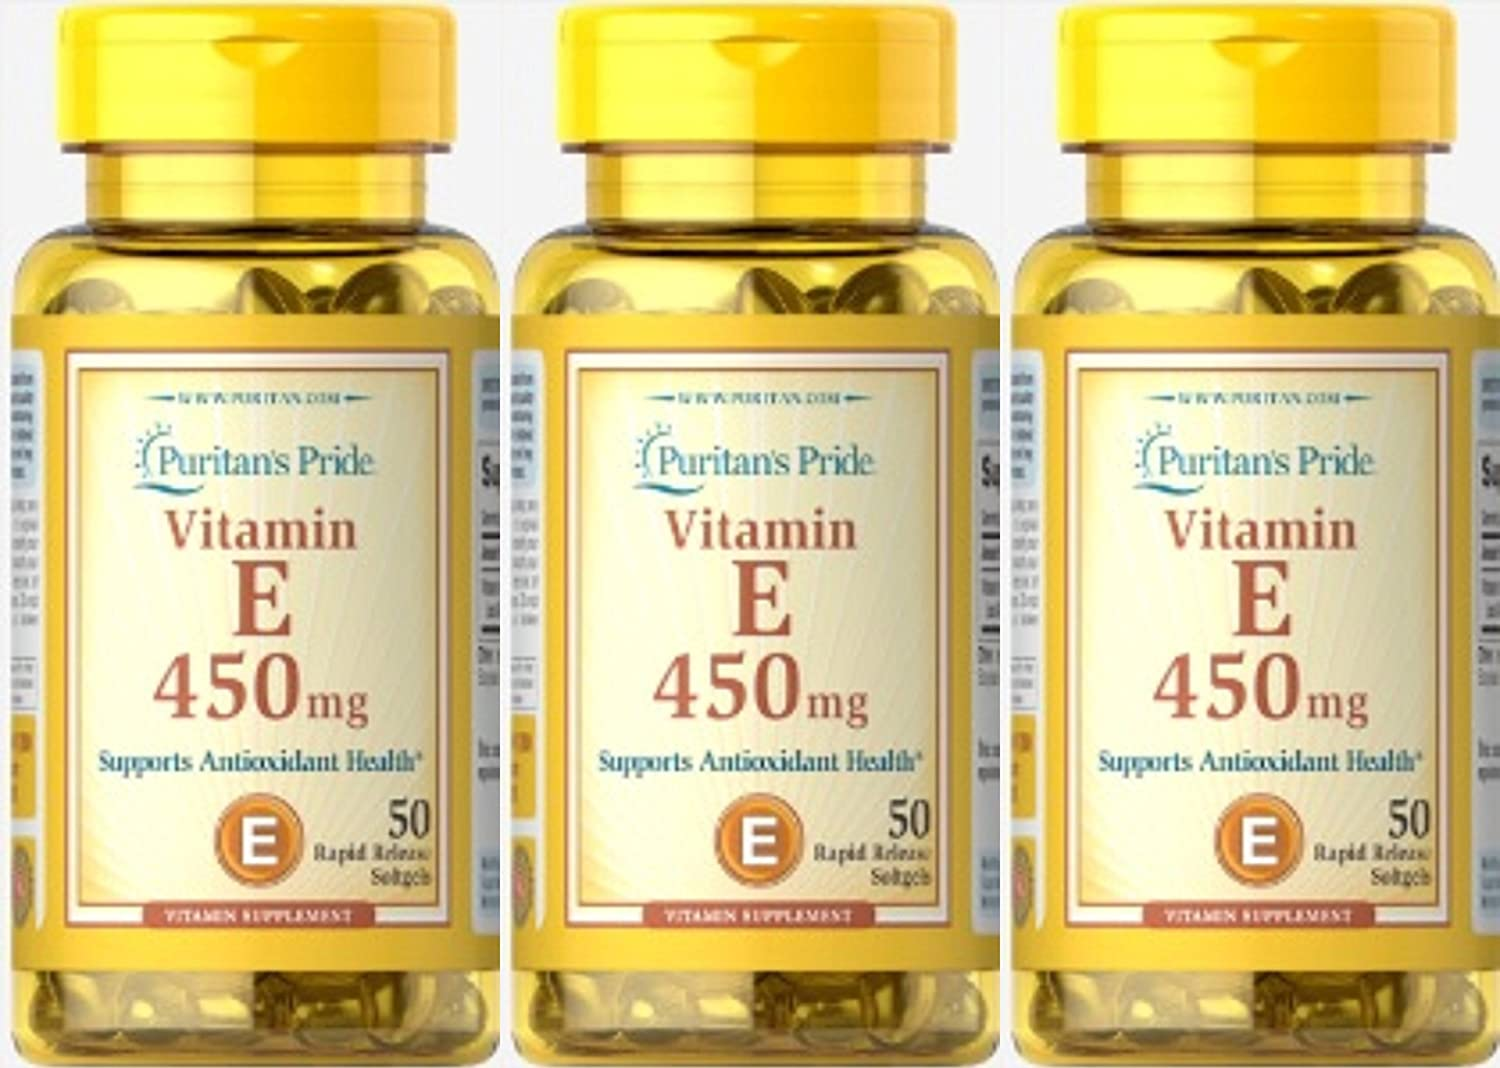 Vitamina E 1000 IU 50 perlas. E1000. (Pack 3u.): Amazon.es: Salud ...